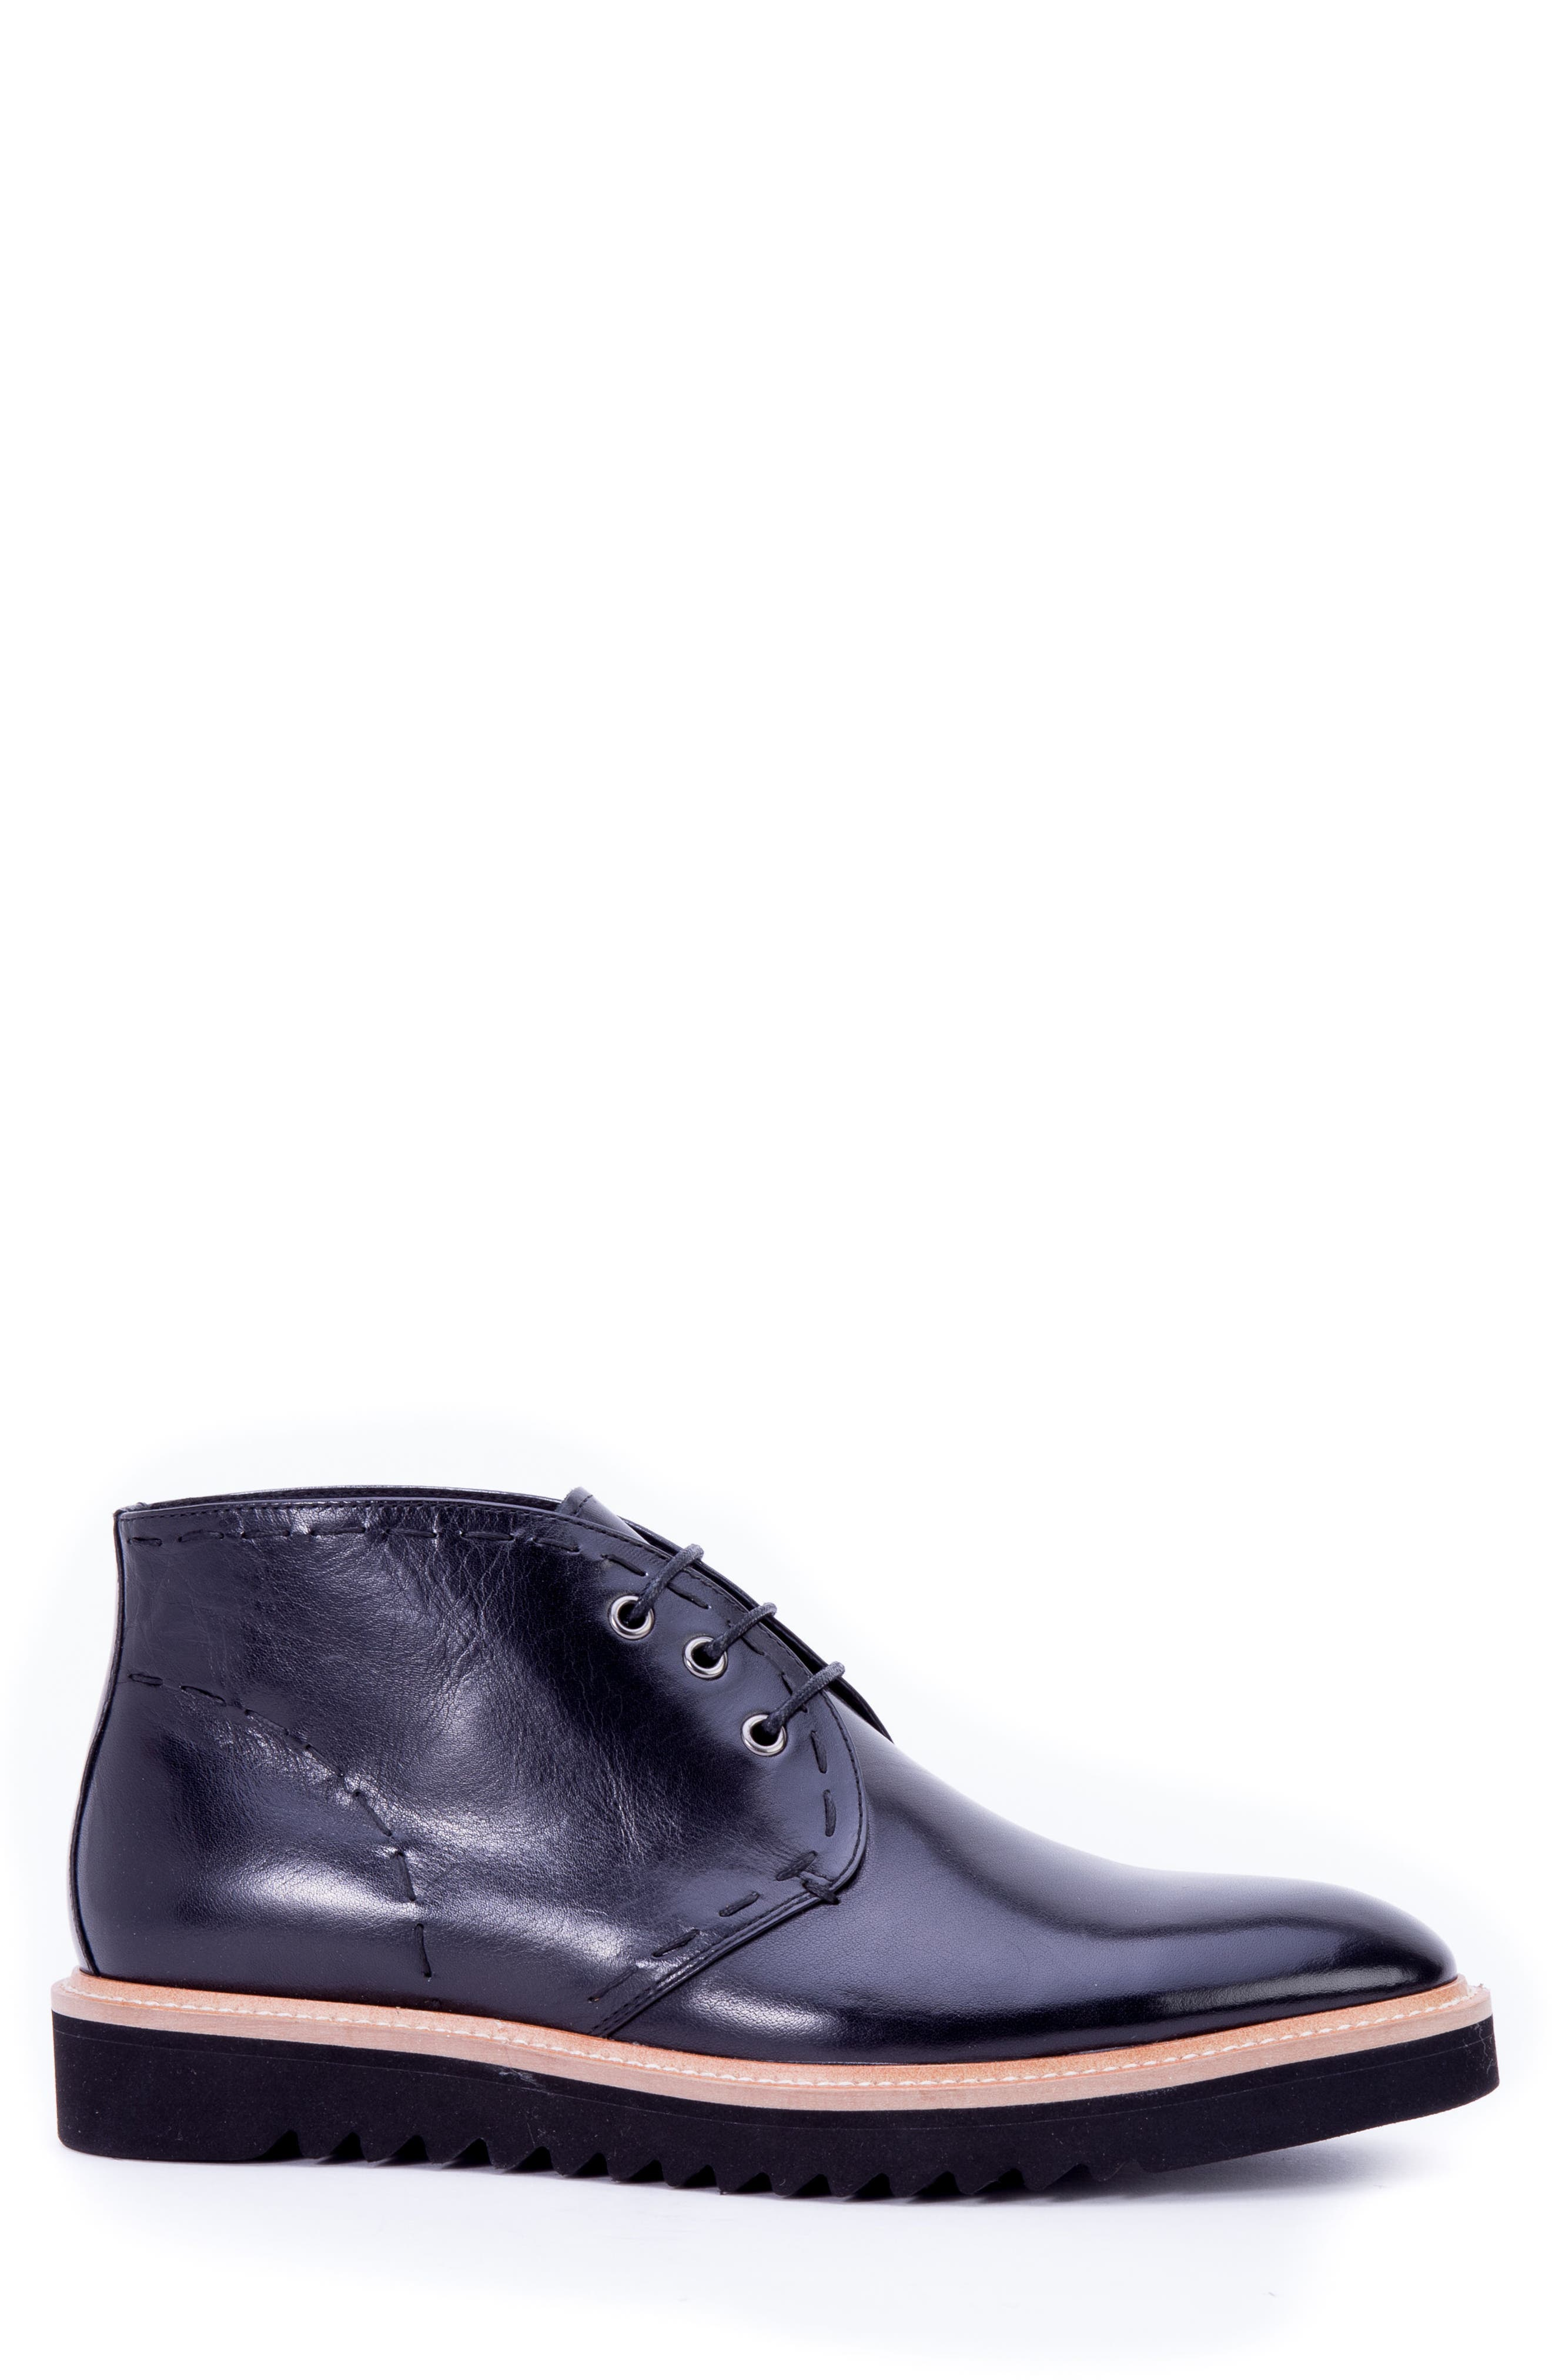 Lombardo Chukka Boot,                             Alternate thumbnail 3, color,                             Black Leather